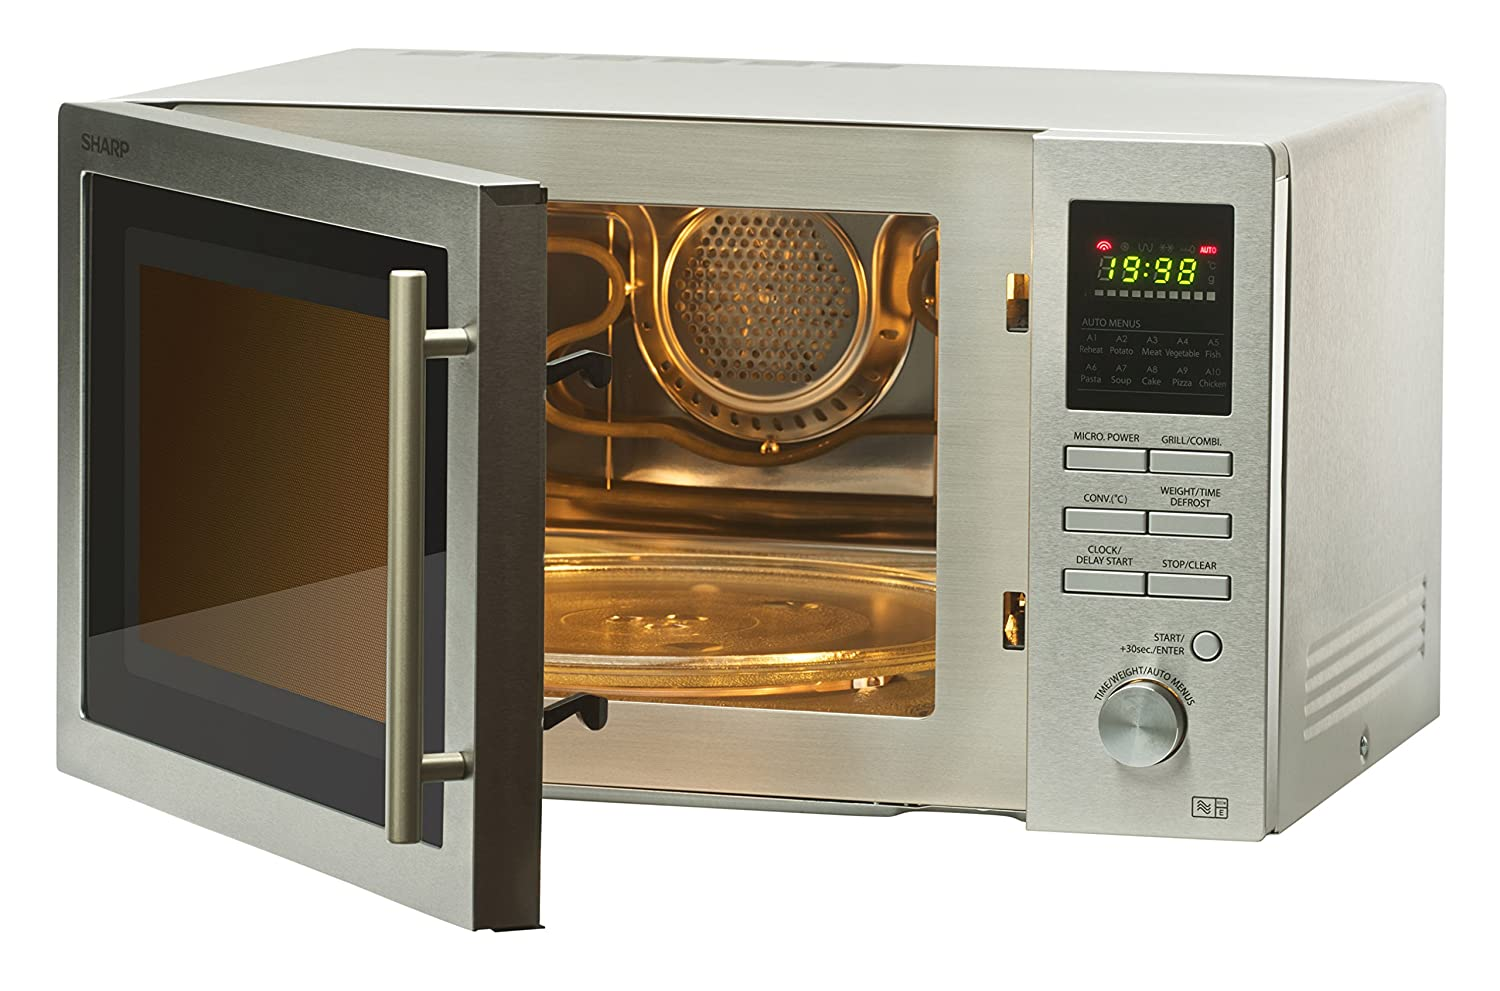 Heavy Duty Microwaves Sharp R82stma Combi Microwave Oven With 1 Year Warranty 25 Litre